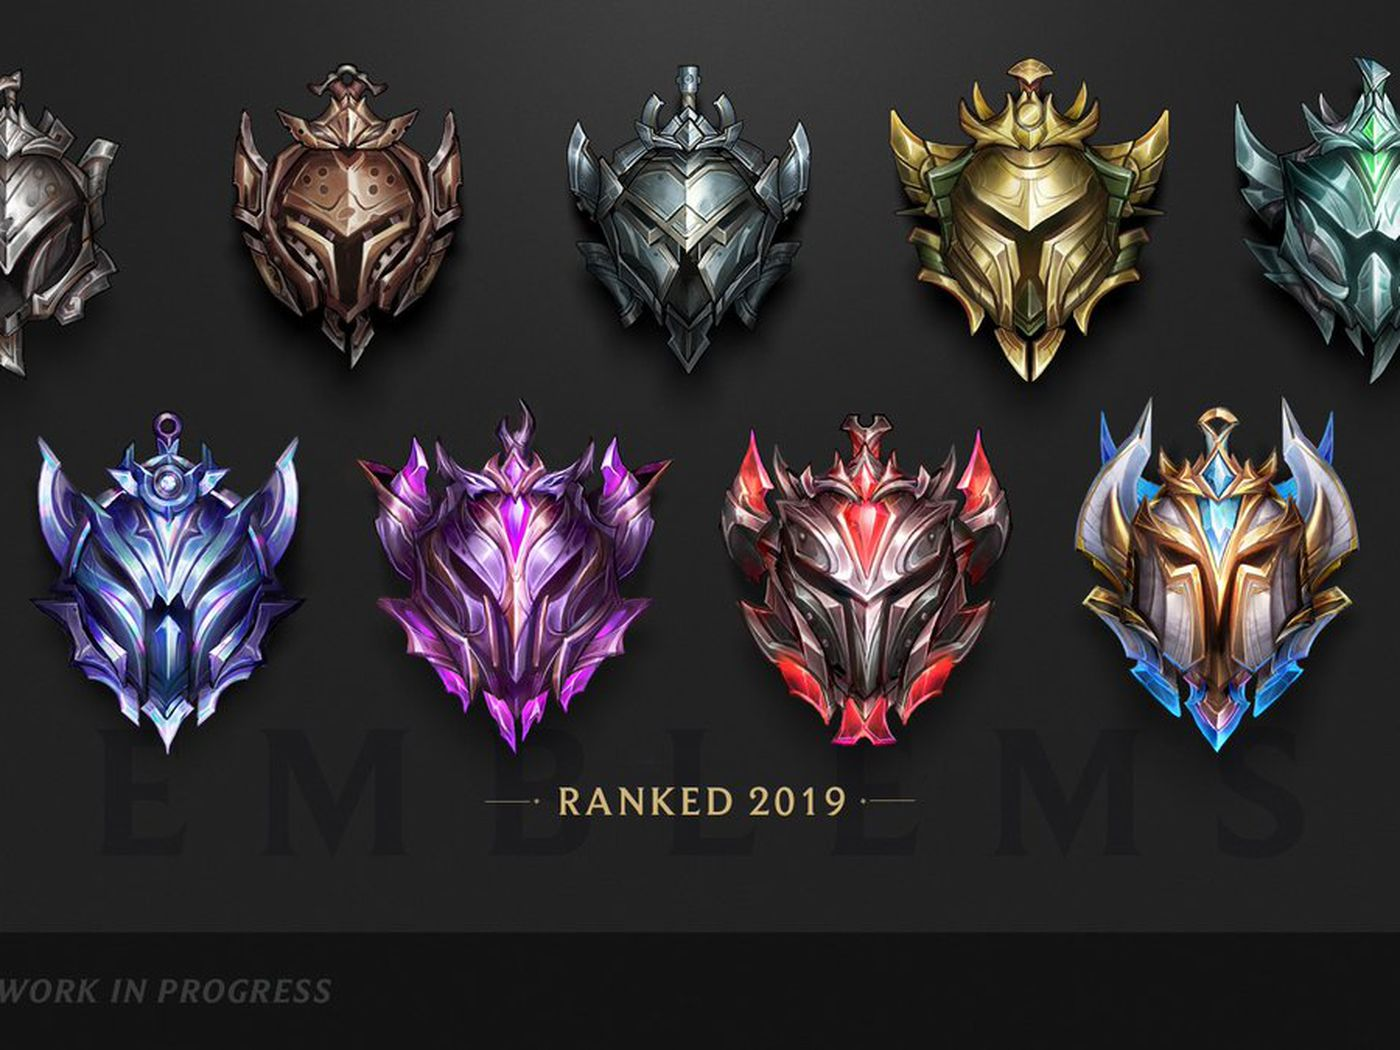 New Versions Of Ranked Visuals For 2019 Season Revealed